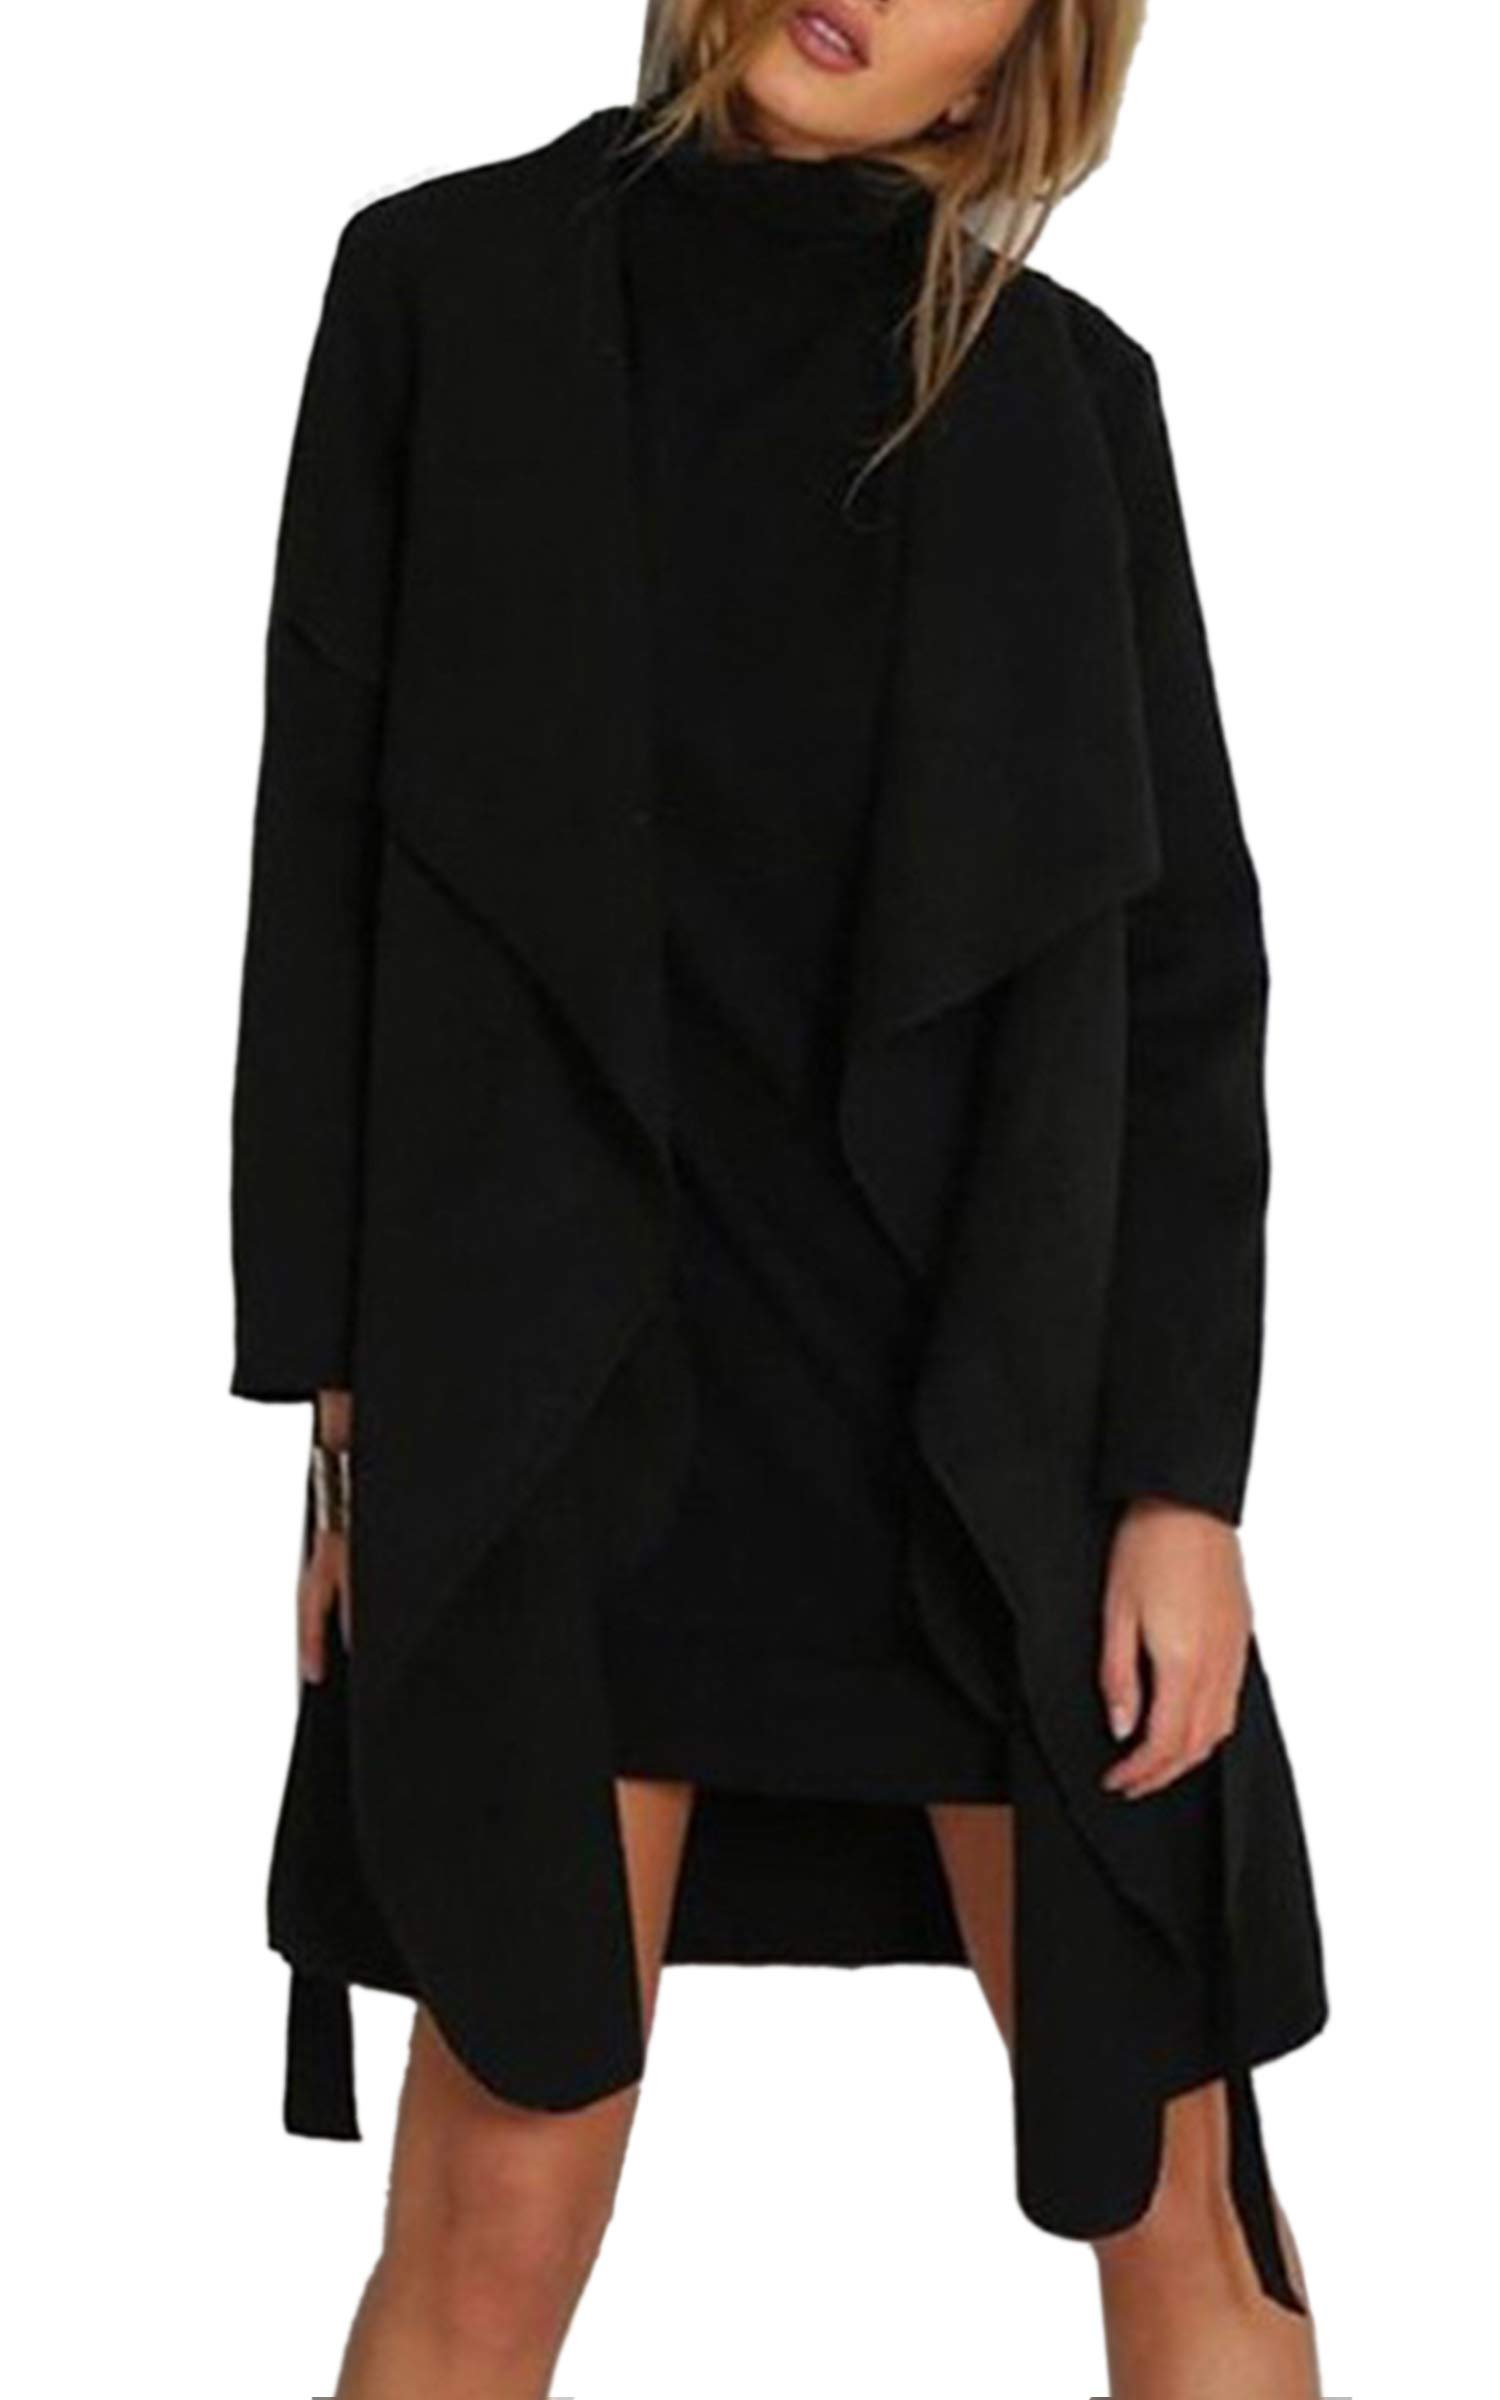 Angashion Women's Casual Long Sleeve Lapel Pocket Outwear Trench Coat Cardigan with Belt Black XL